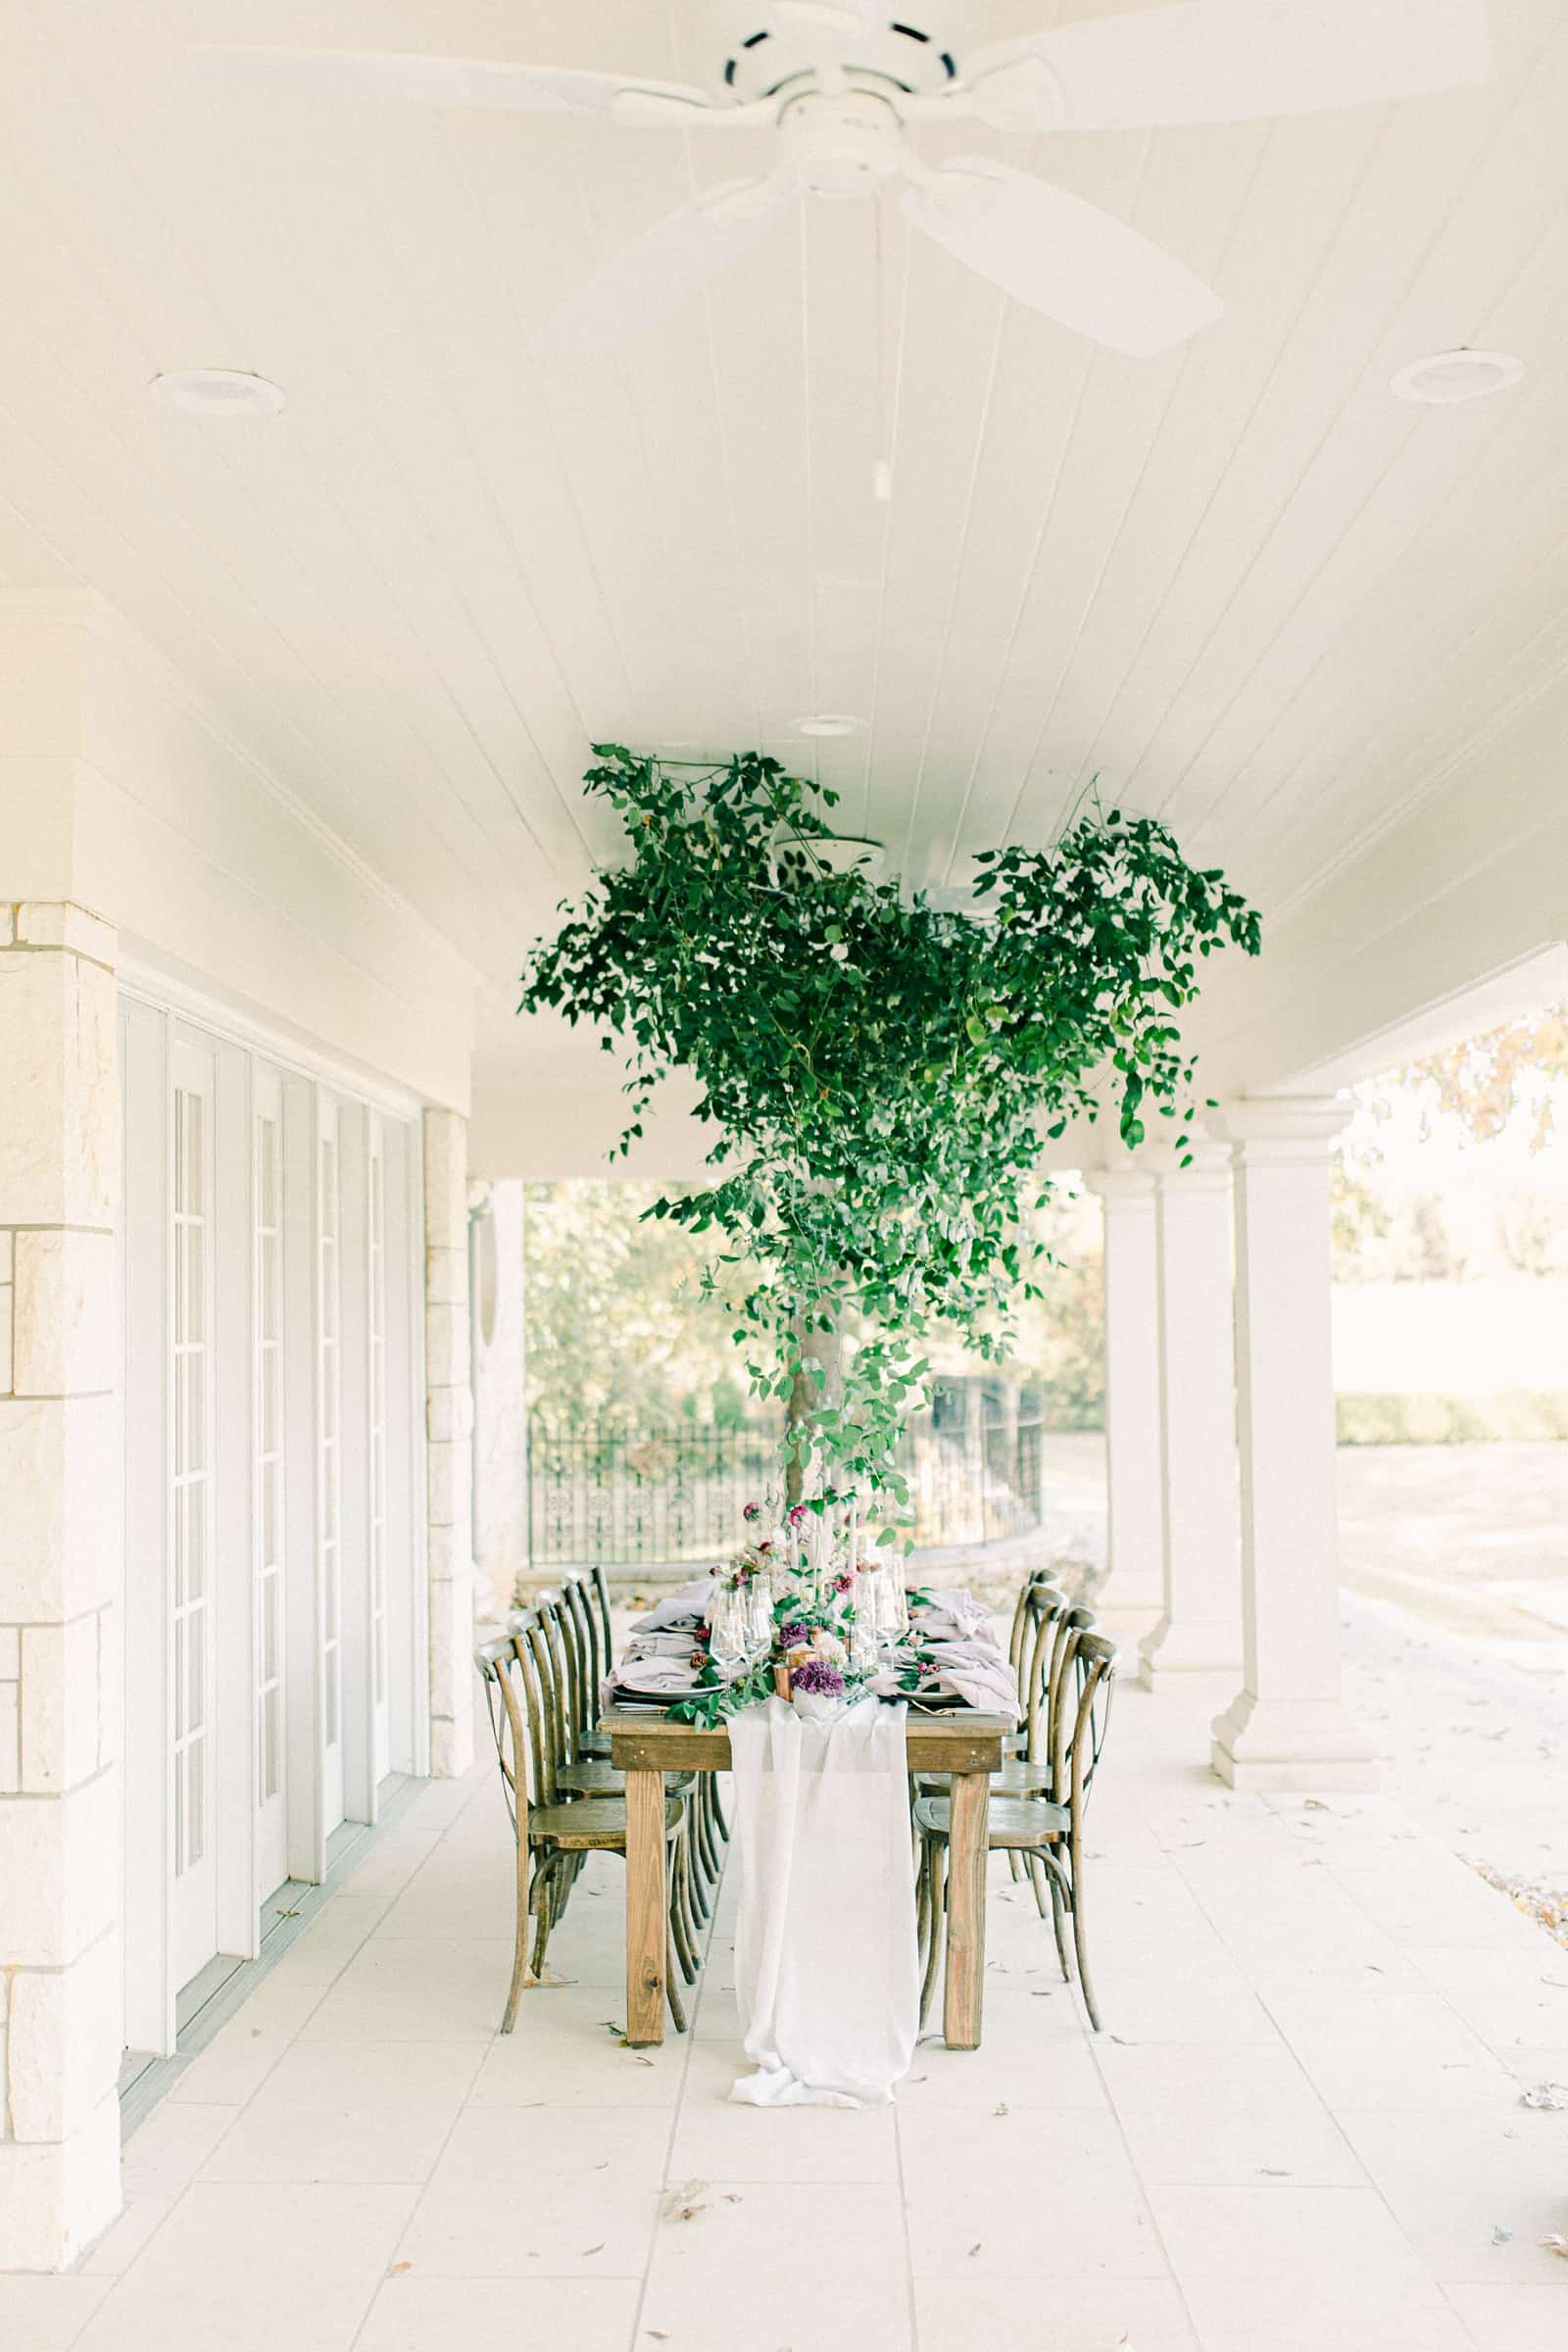 Wedding reception table for bridal party with canopy of greenery on ceiling